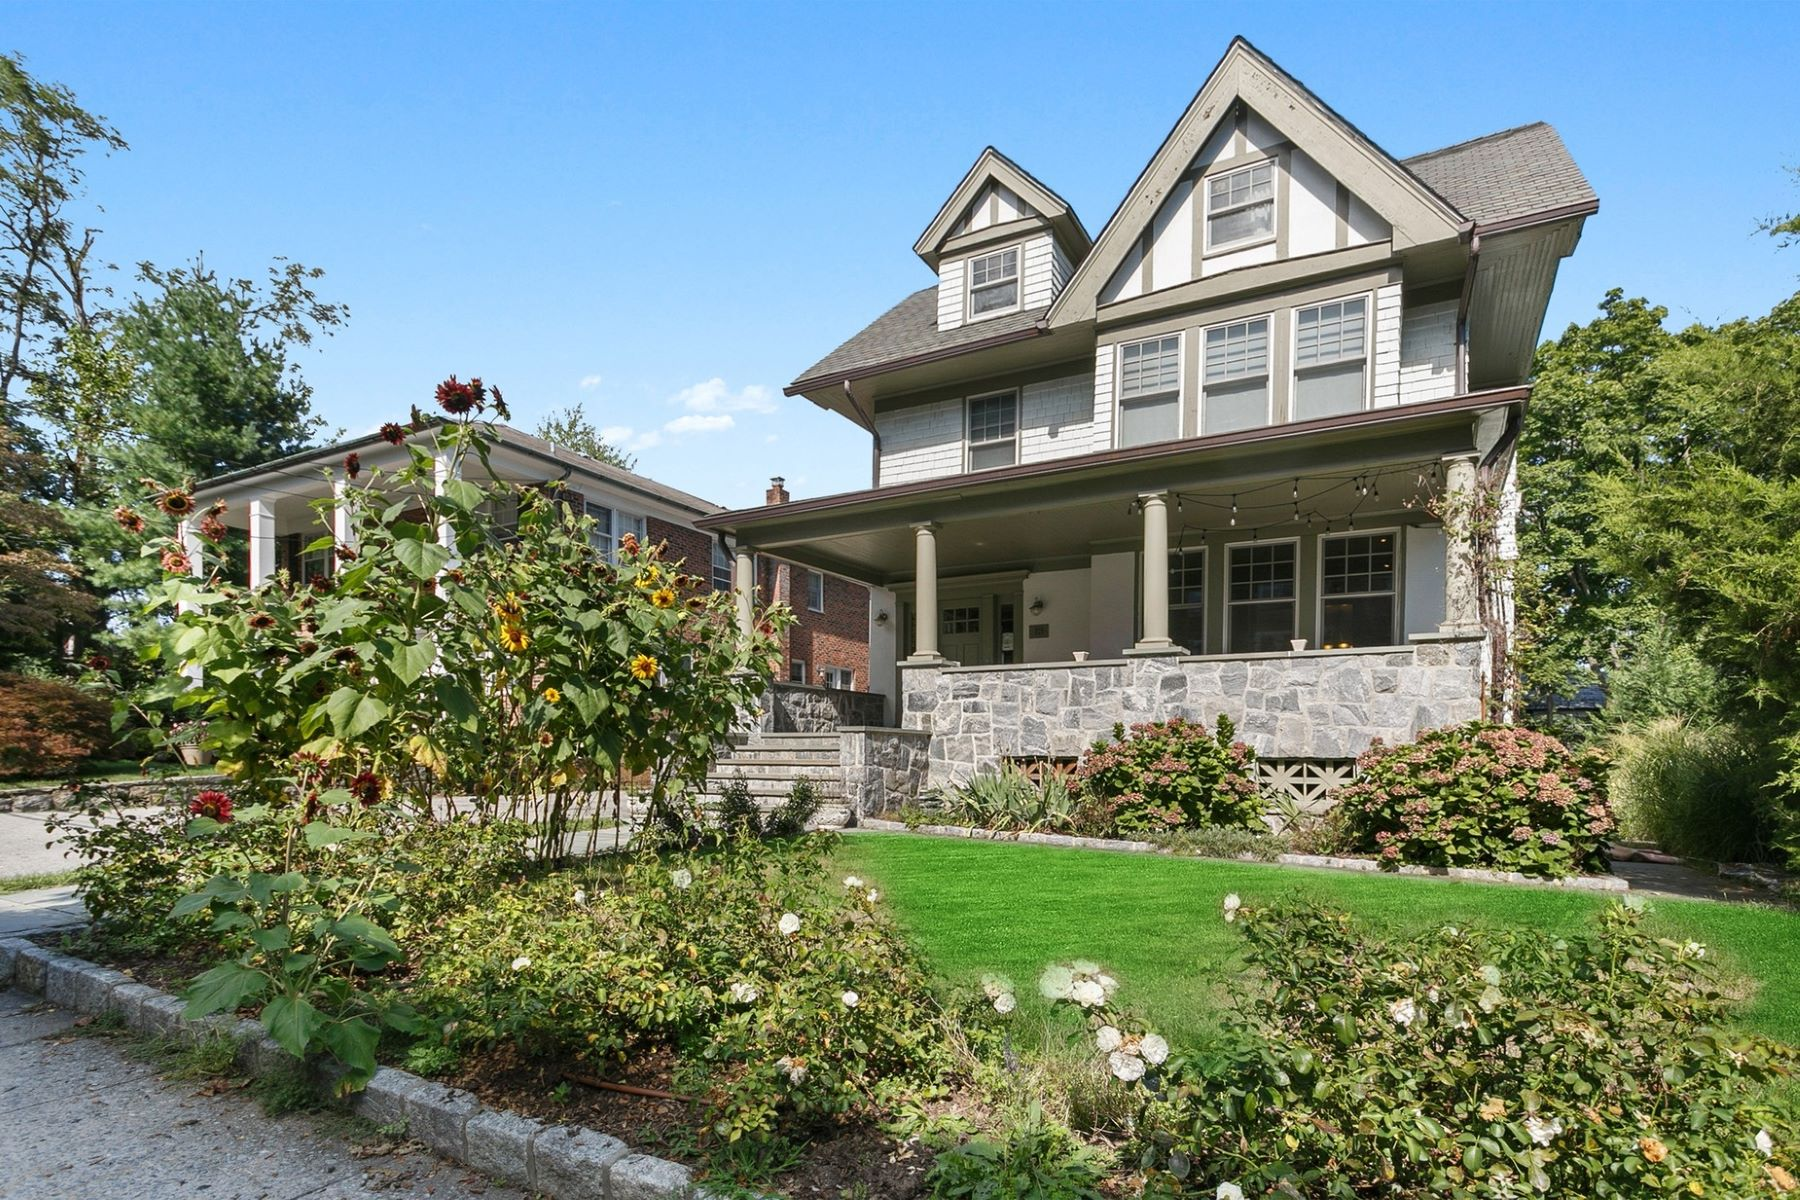 Single Family Homes for Active at Remarkably Restored Arts and Crafts Home 18 Kraft Avenue Bronxville, New York 10708 United States